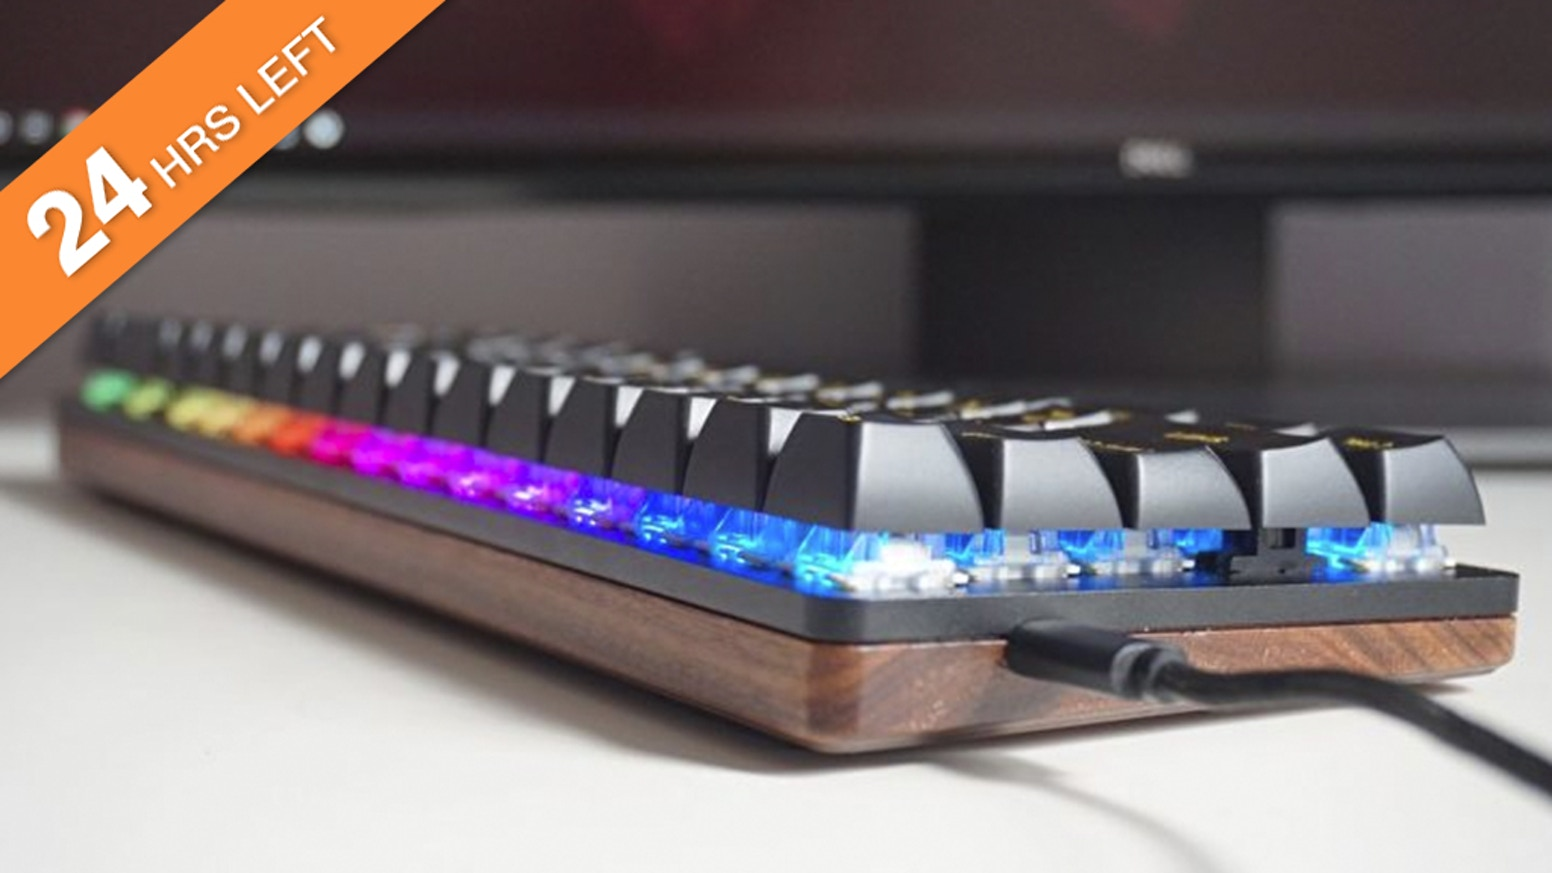 Solid Wood Base |  Ergonomic Design | Hot Swappable Gateron Switches | Mac&Win&Linux | RGB Backlighting | Connects Up To Three Devices